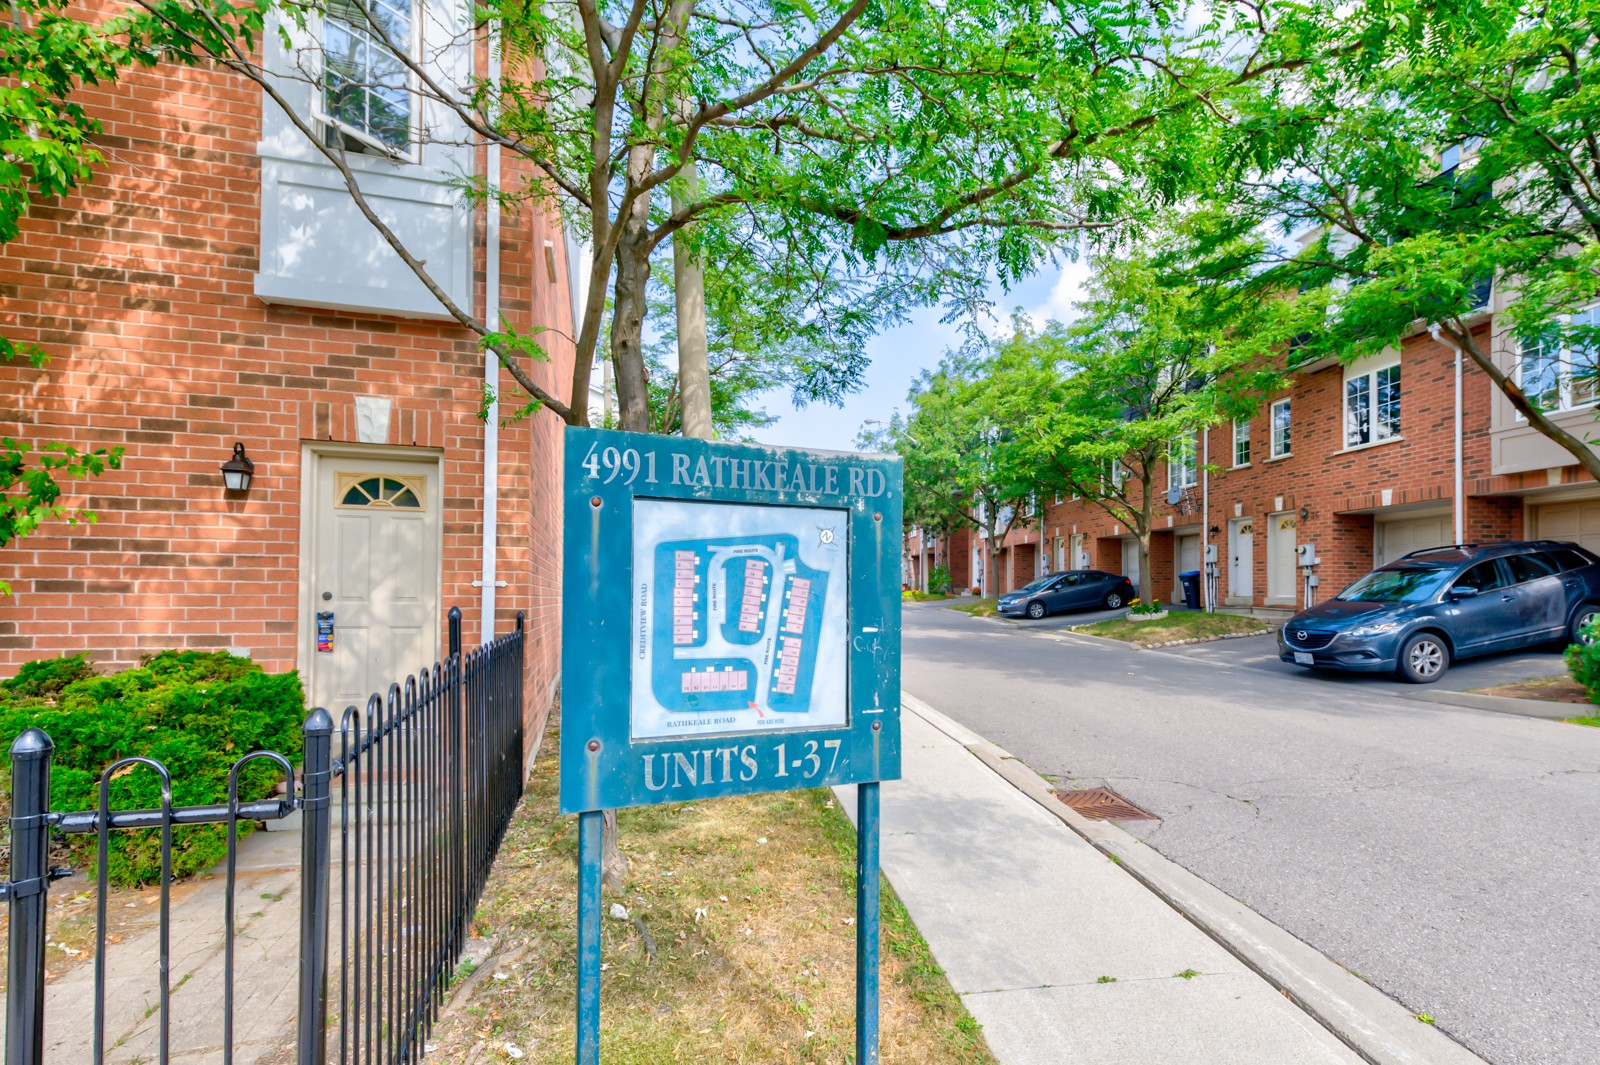 4991 Rathkeale Road Townhouses at 4991 Rathkeale Rd, Mississauga 1